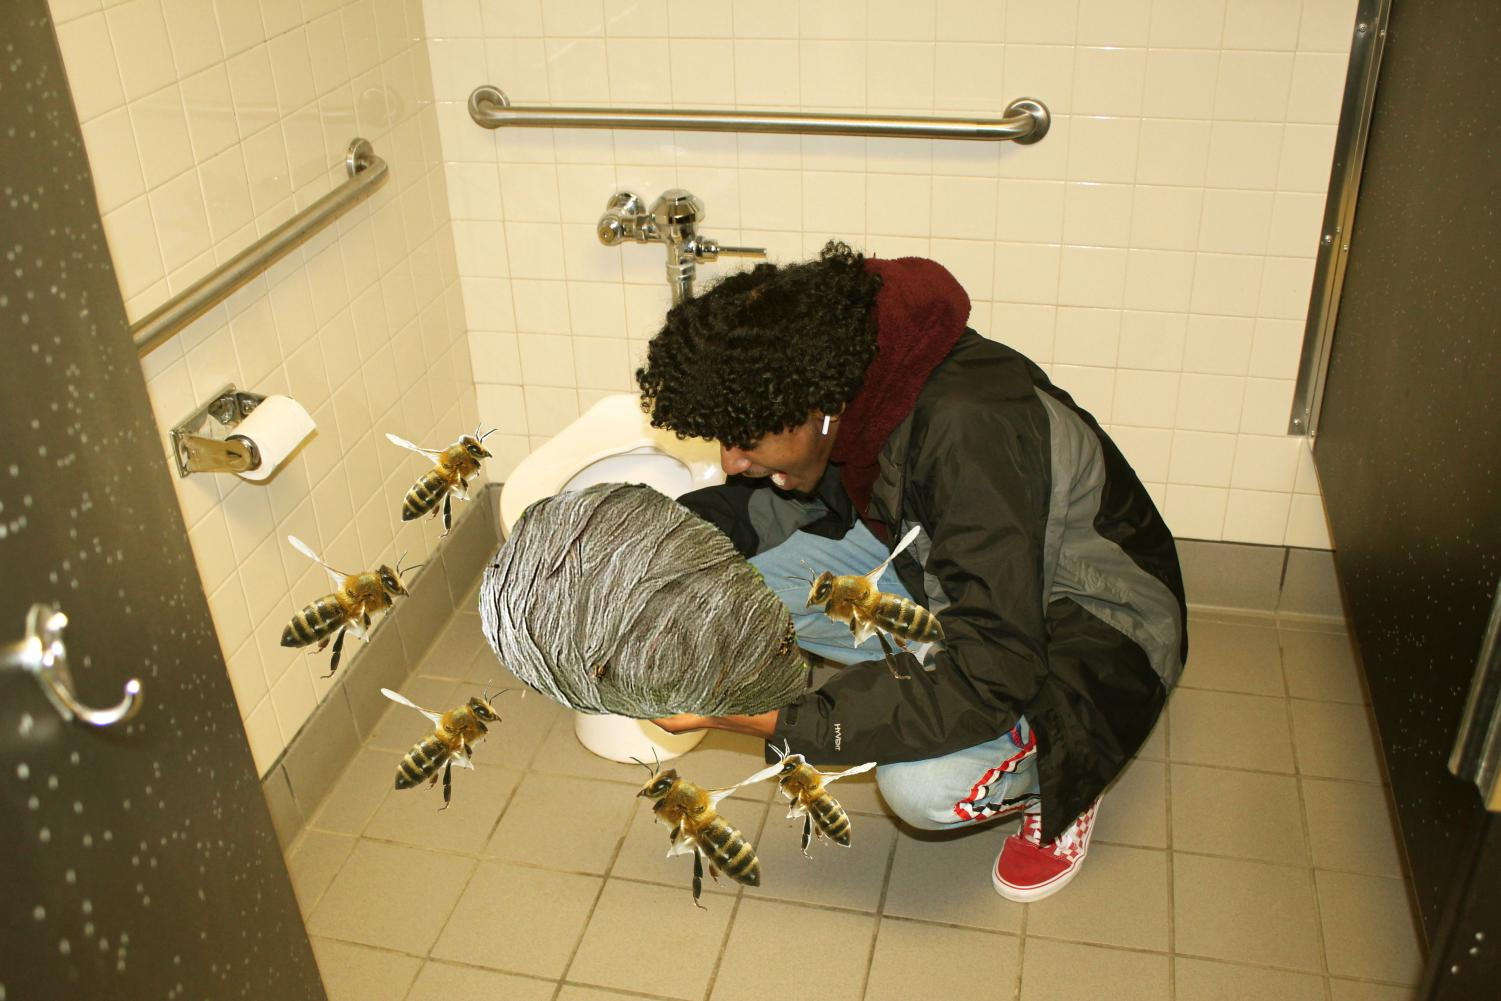 Senior Yoni Mesfein chows down on an active beehive in a women's bathroom stall